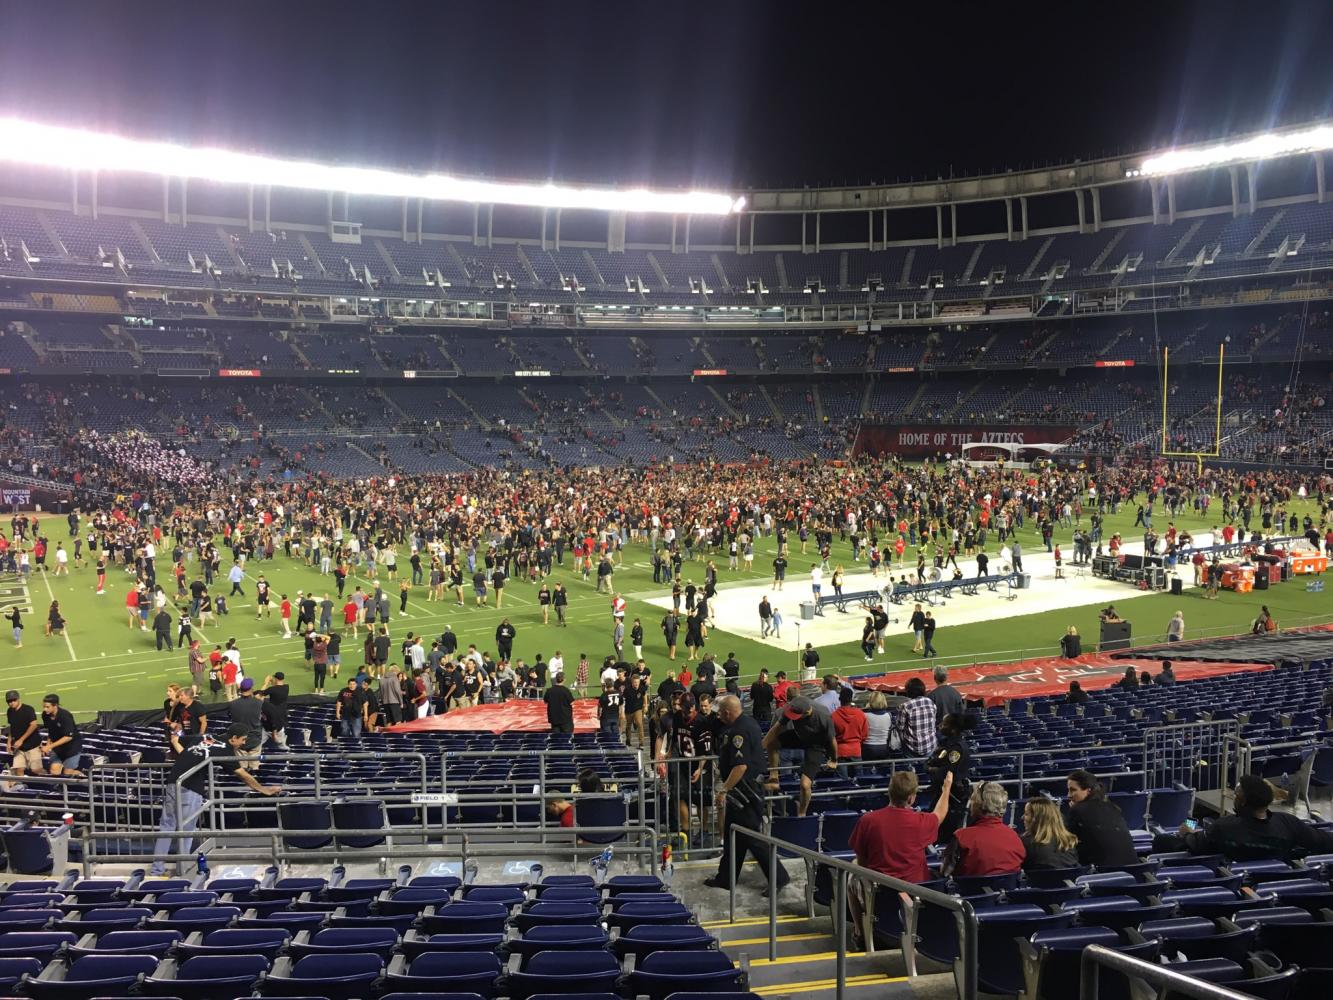 At the SDSU stadium, everyone runs onto the field to celebrate. The Aztecs beat Stanford 20-17 on Sept. 16.